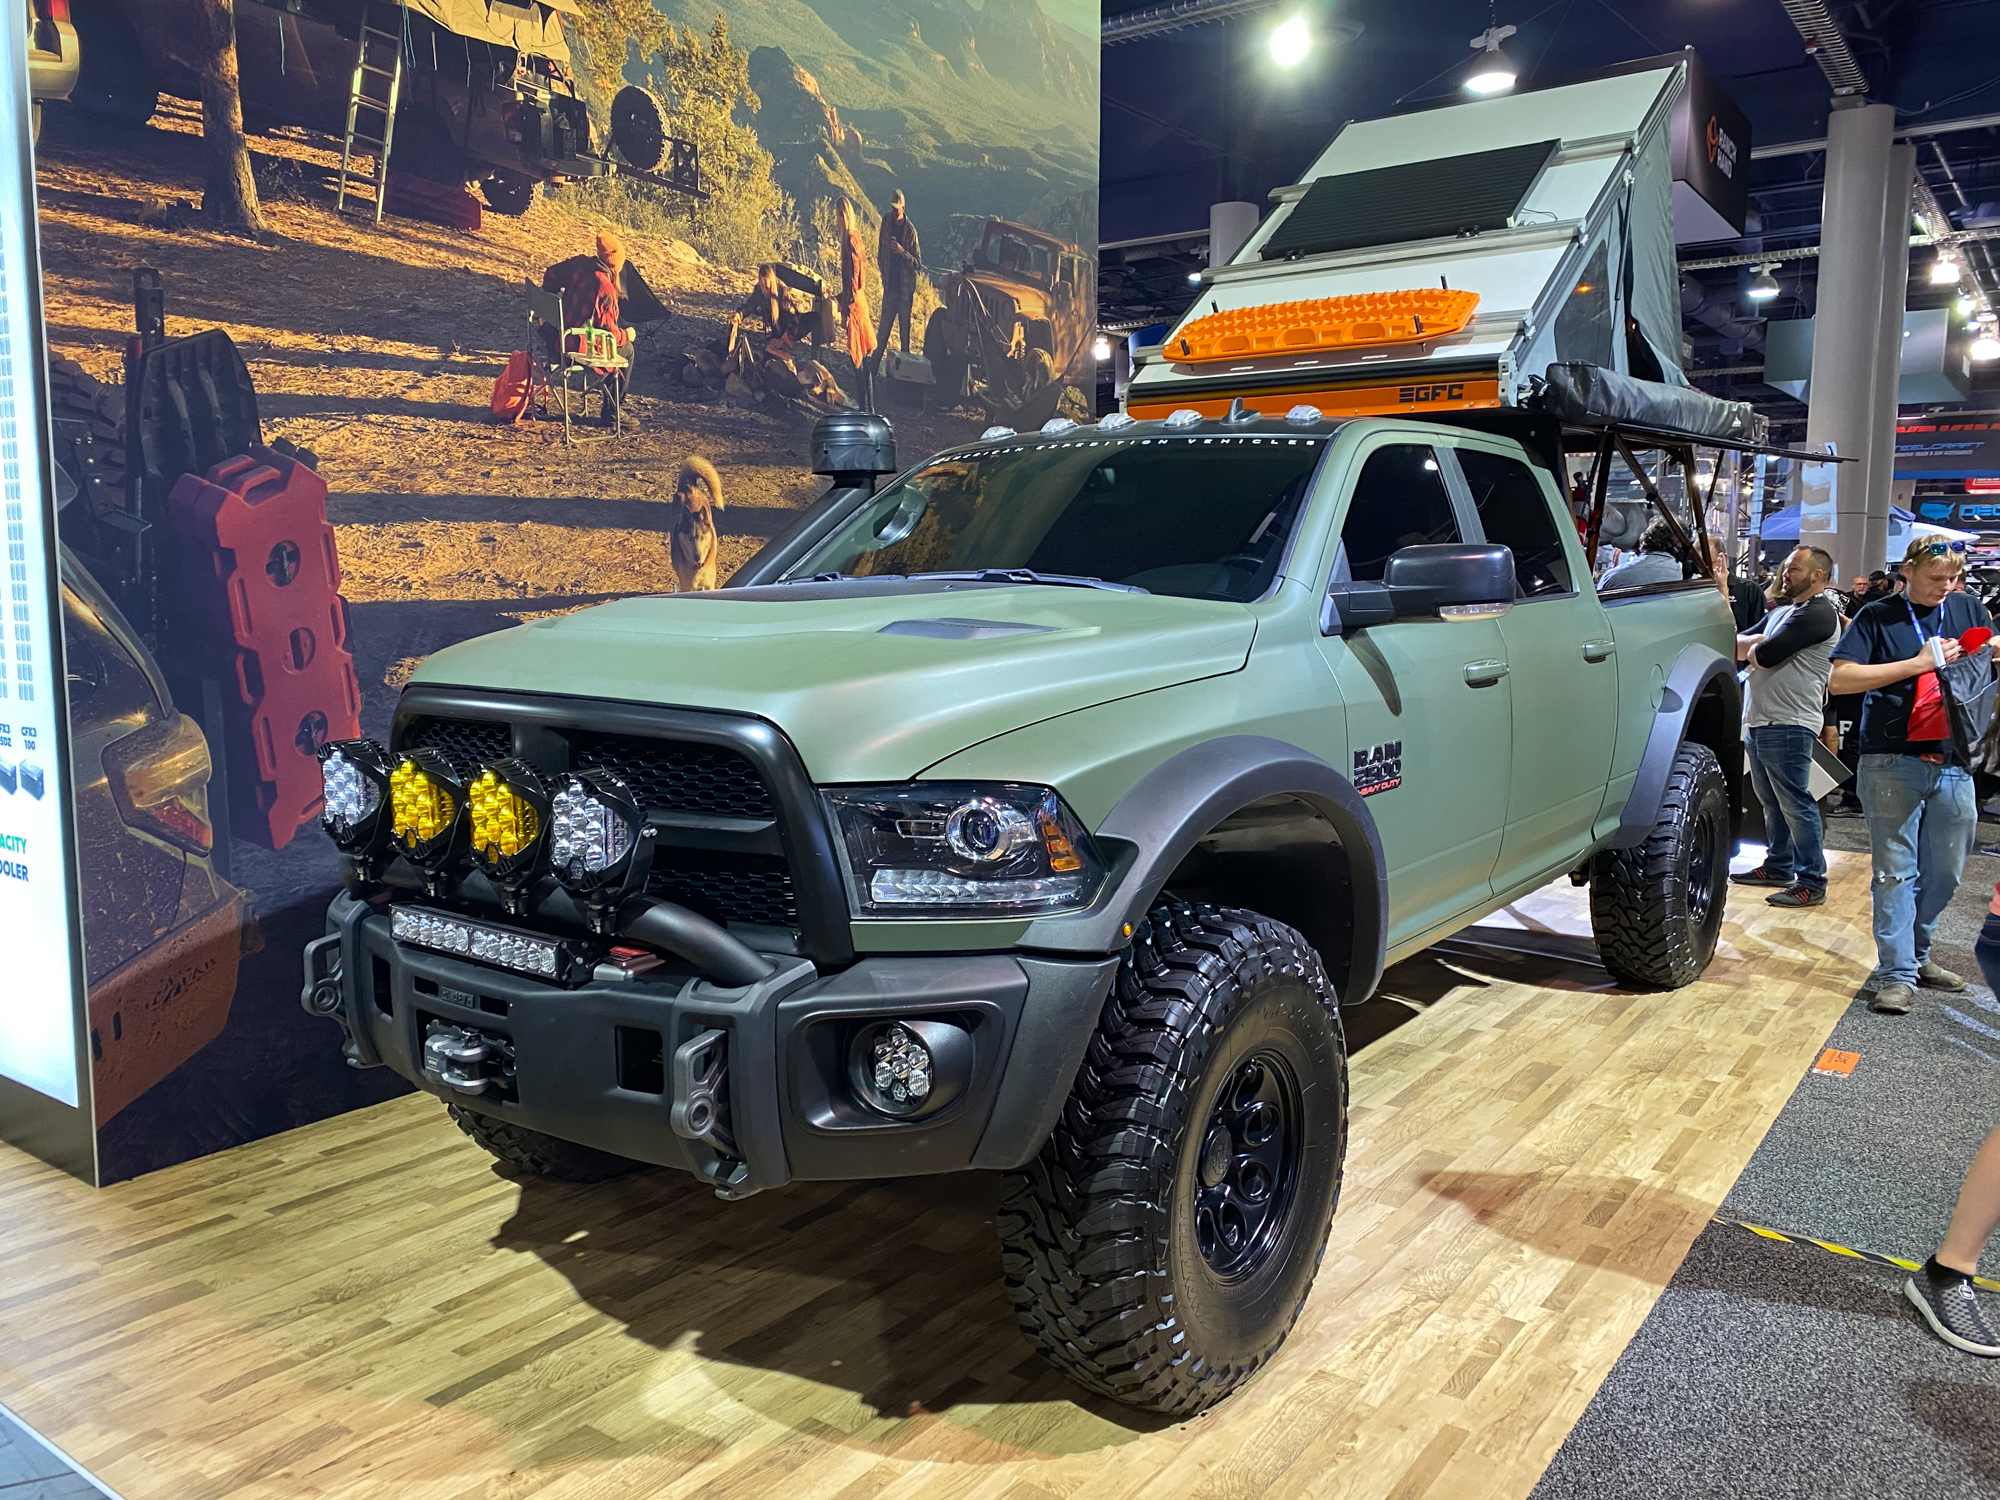 The Best of SEMA Overland 2019